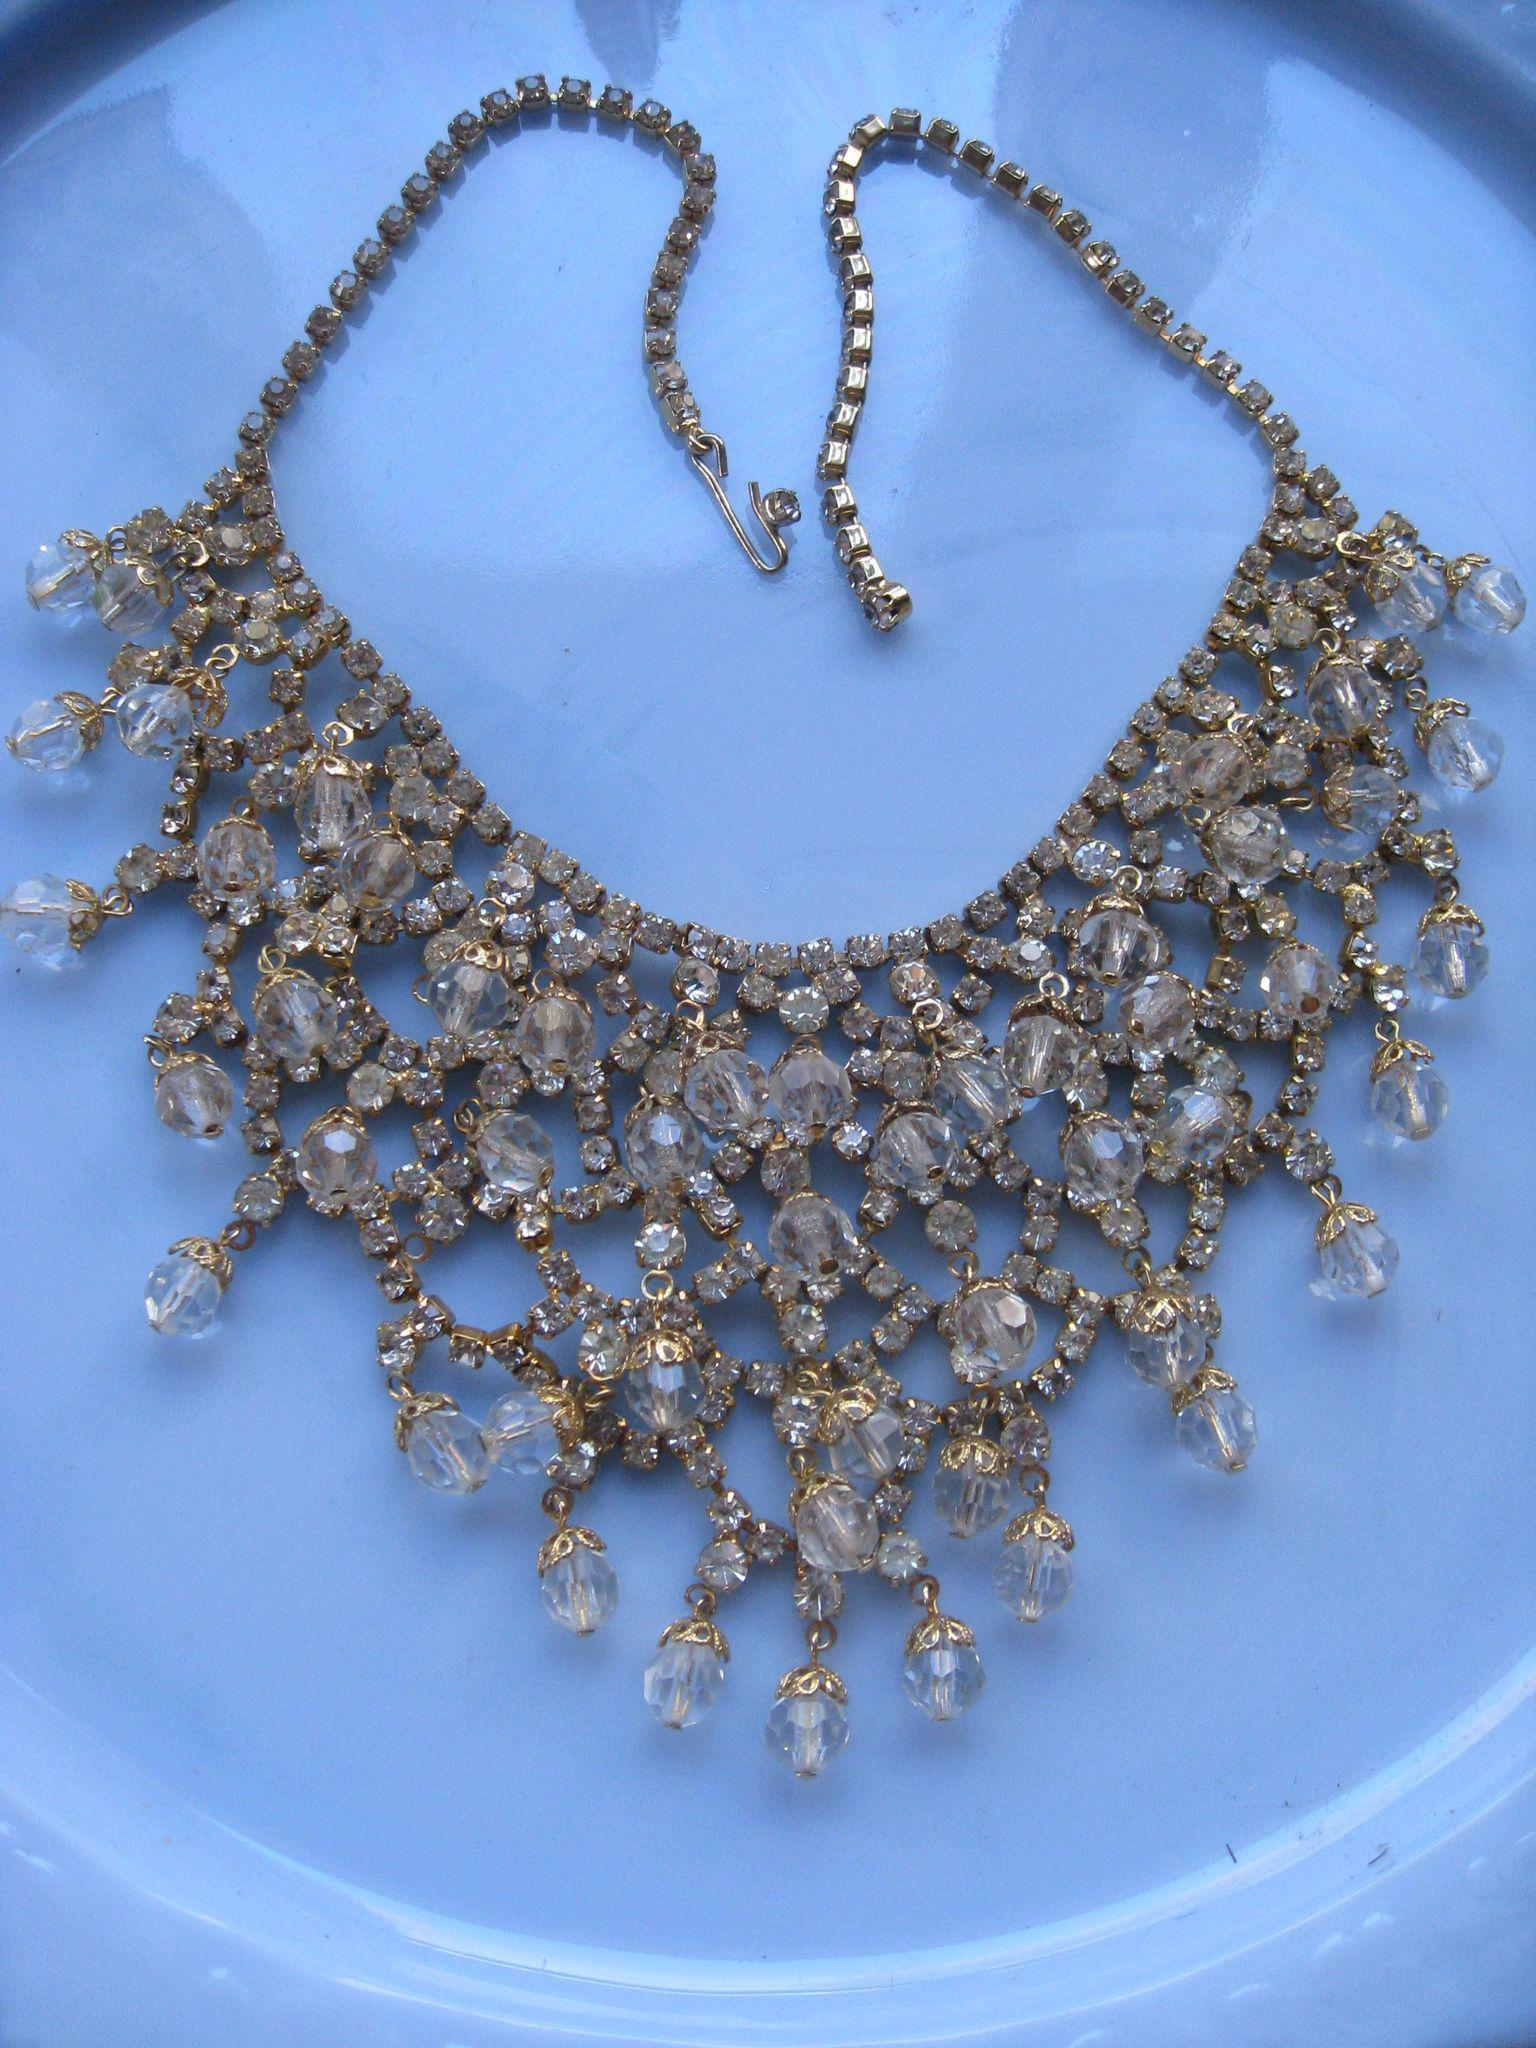 Vintage Unsigned Costume Crystal Bib Necklace Bridal Jewelry